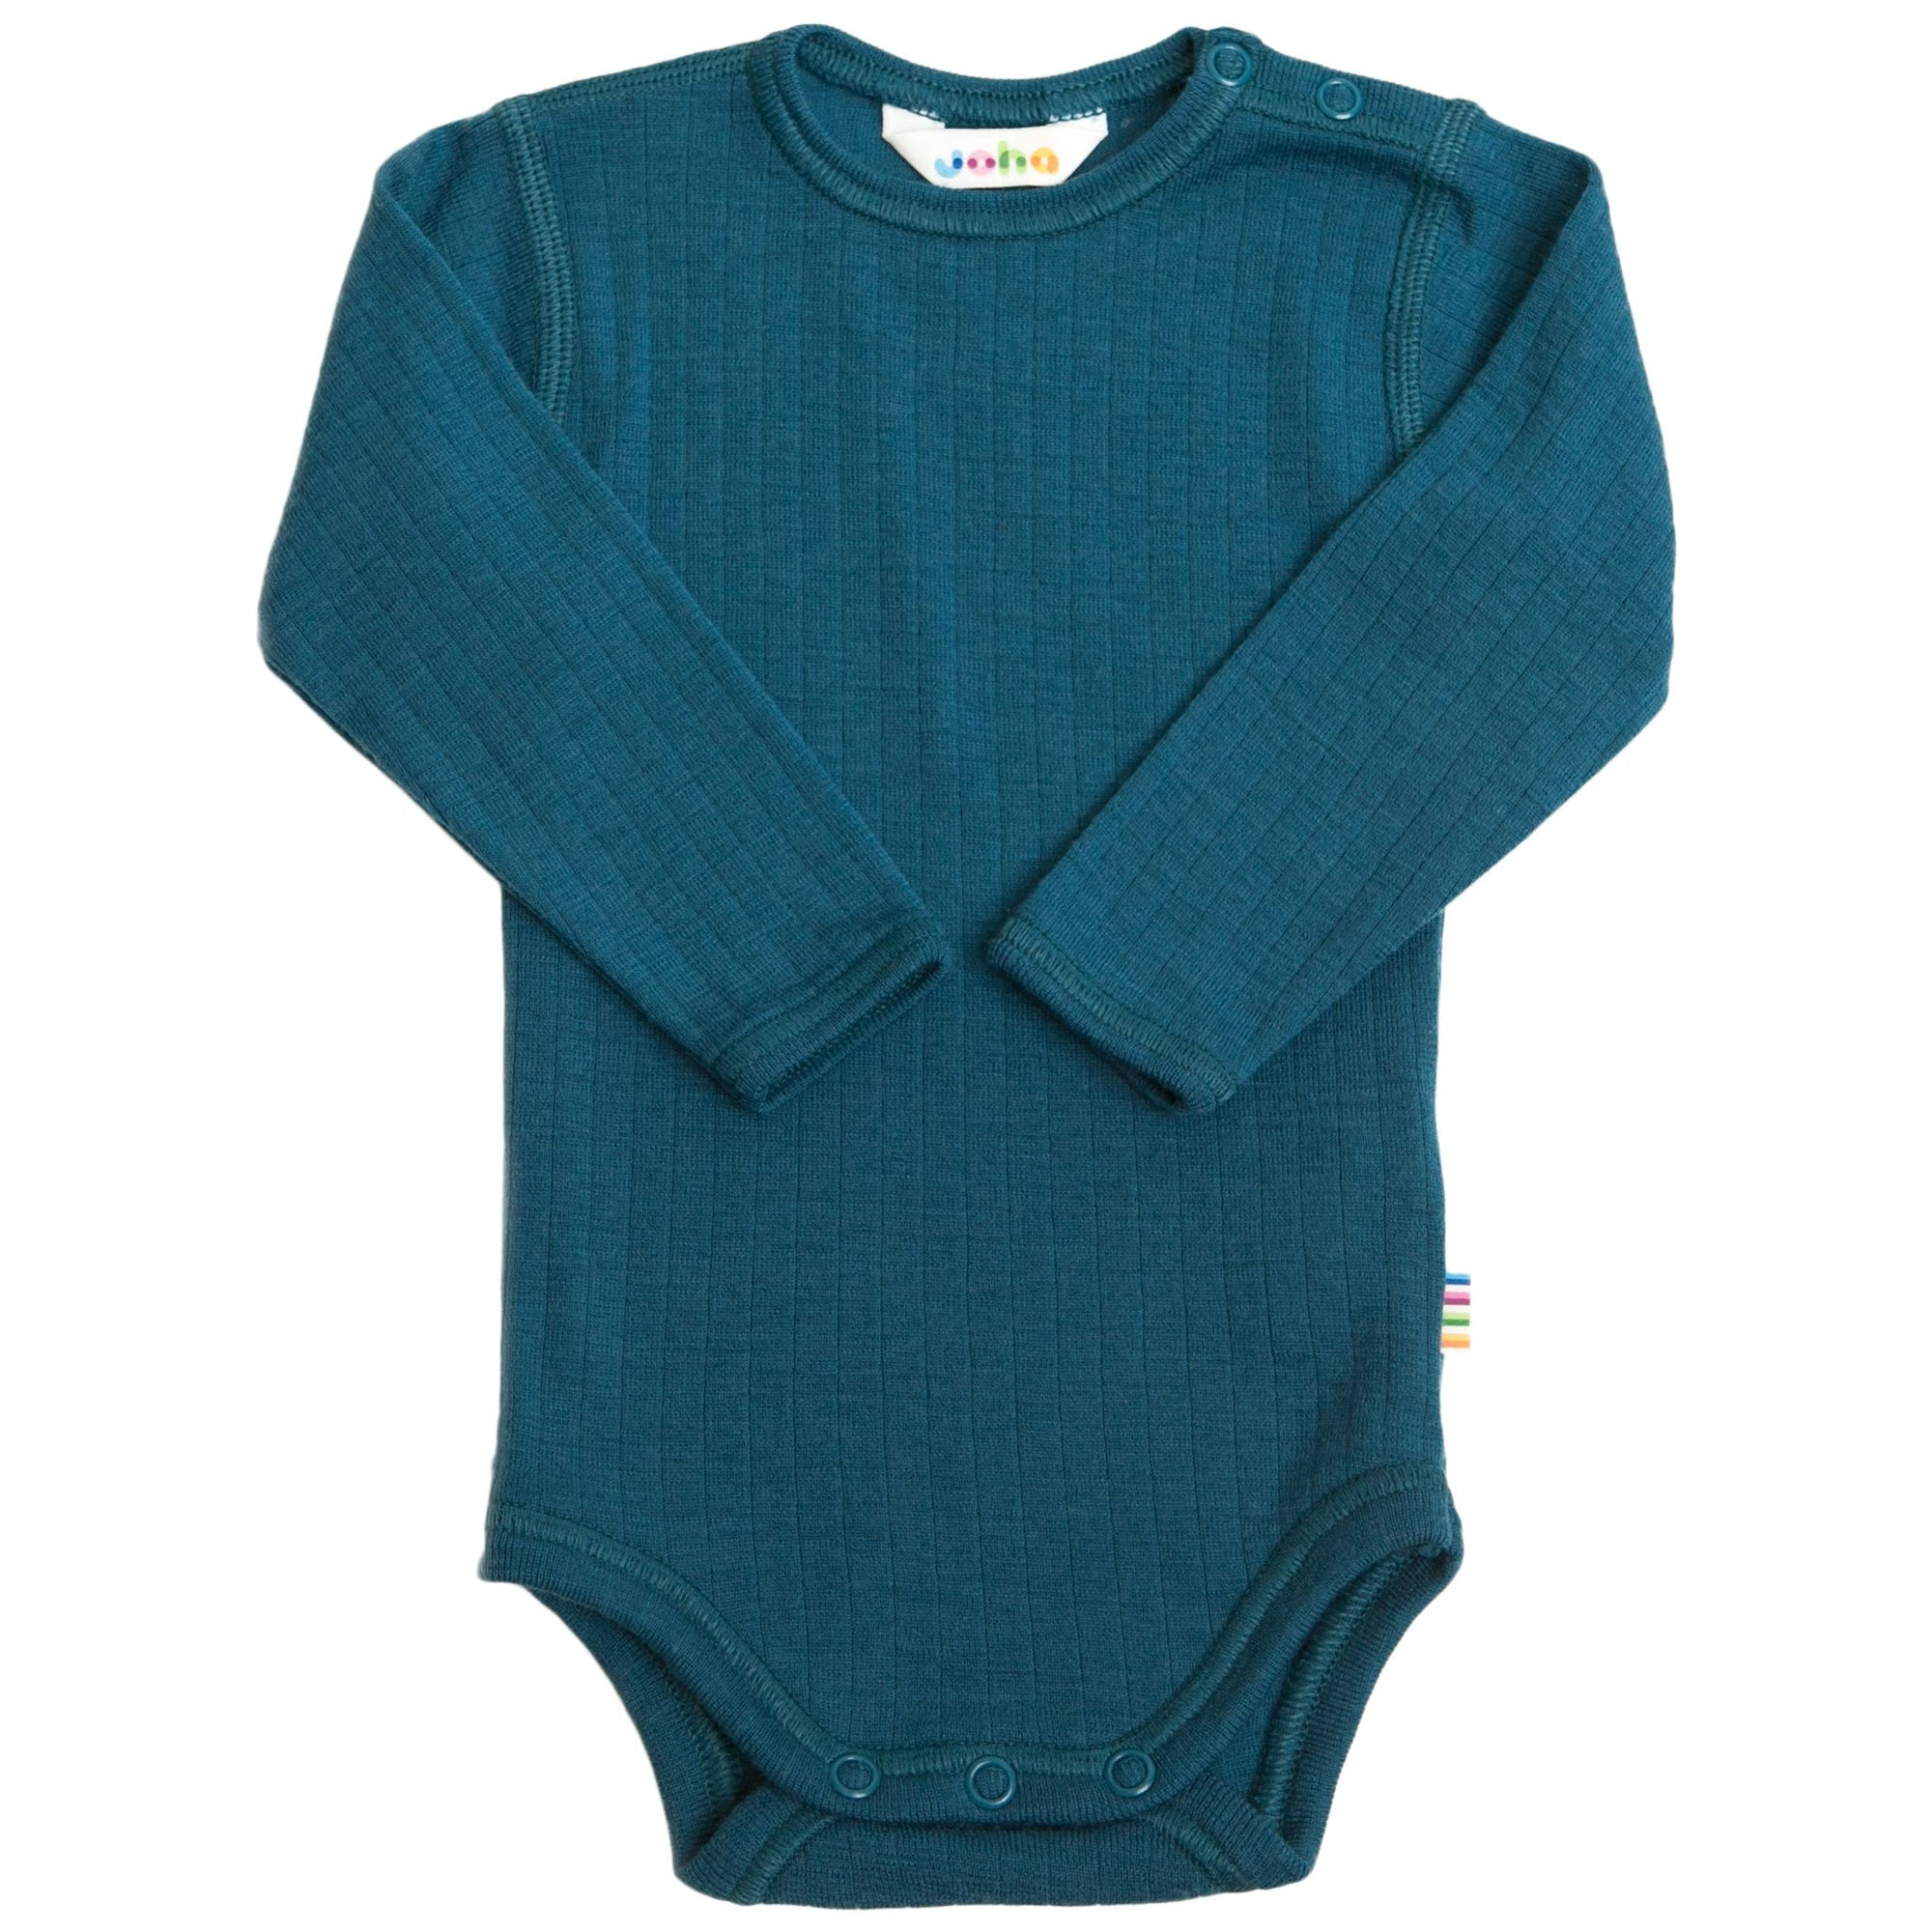 Body Joha din lână merinos - Basic Atlantic Blue-Joha-HipHip.ro